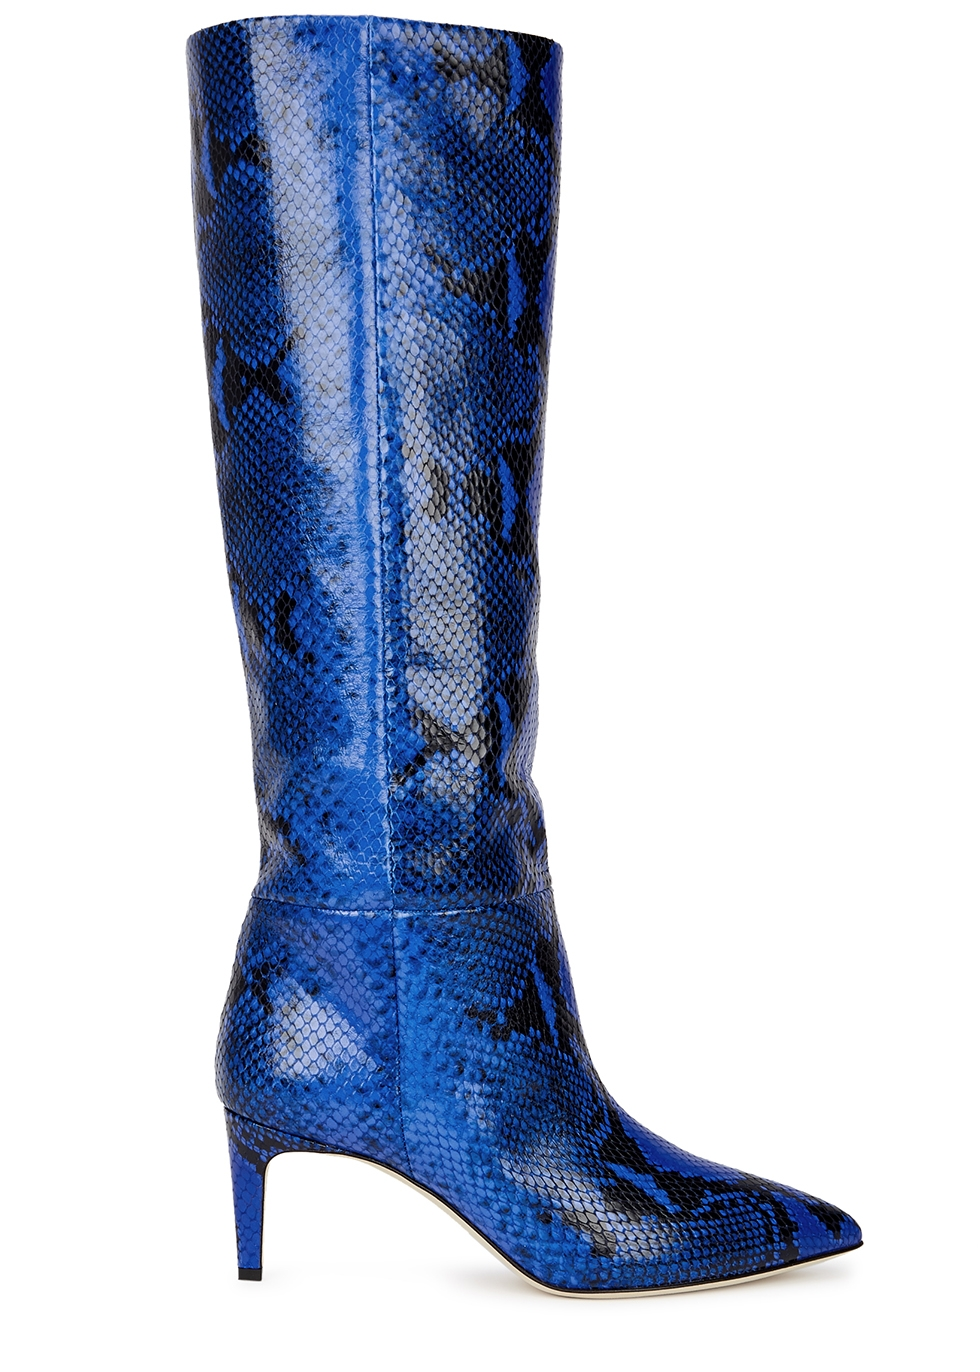 60 python-effect leather knee-high boots